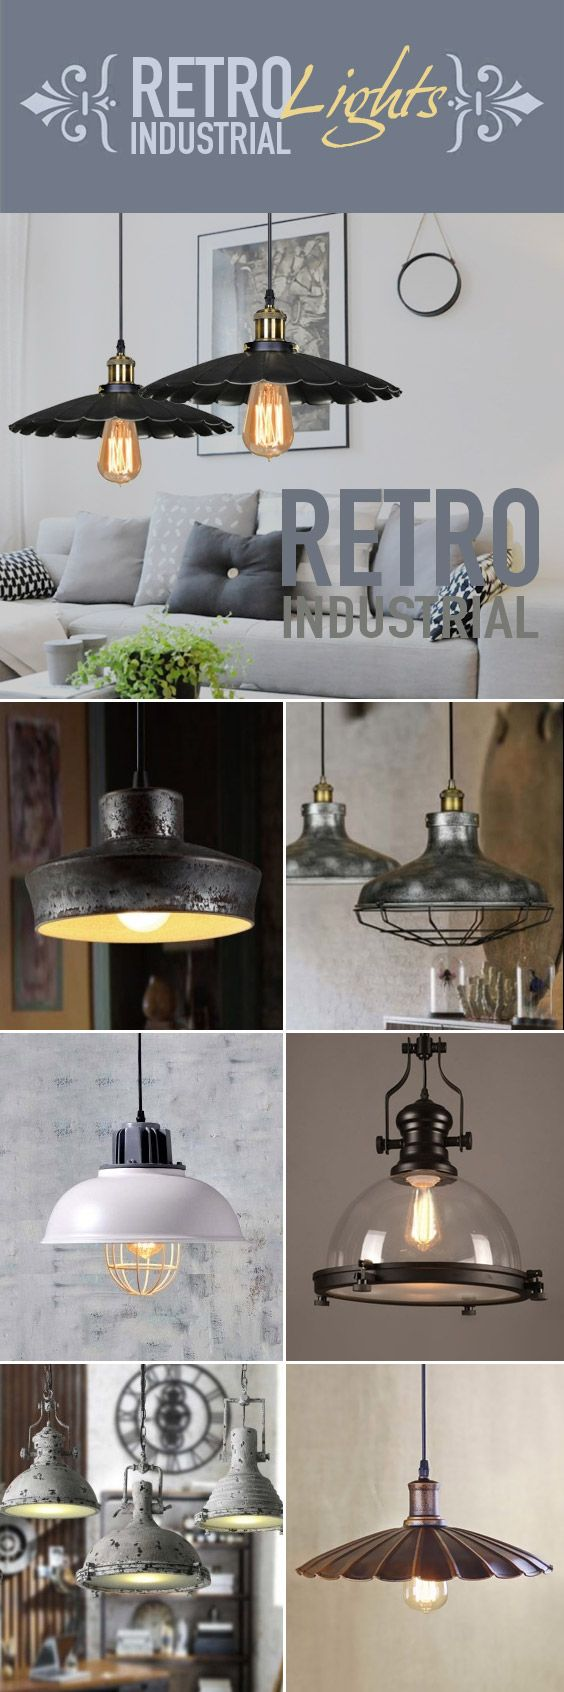 Light vintage danish furniture bathroom cabi lights on ideas for - It Is Well Known That Retro Industrial Pendant Lighting Is A Popular Way To